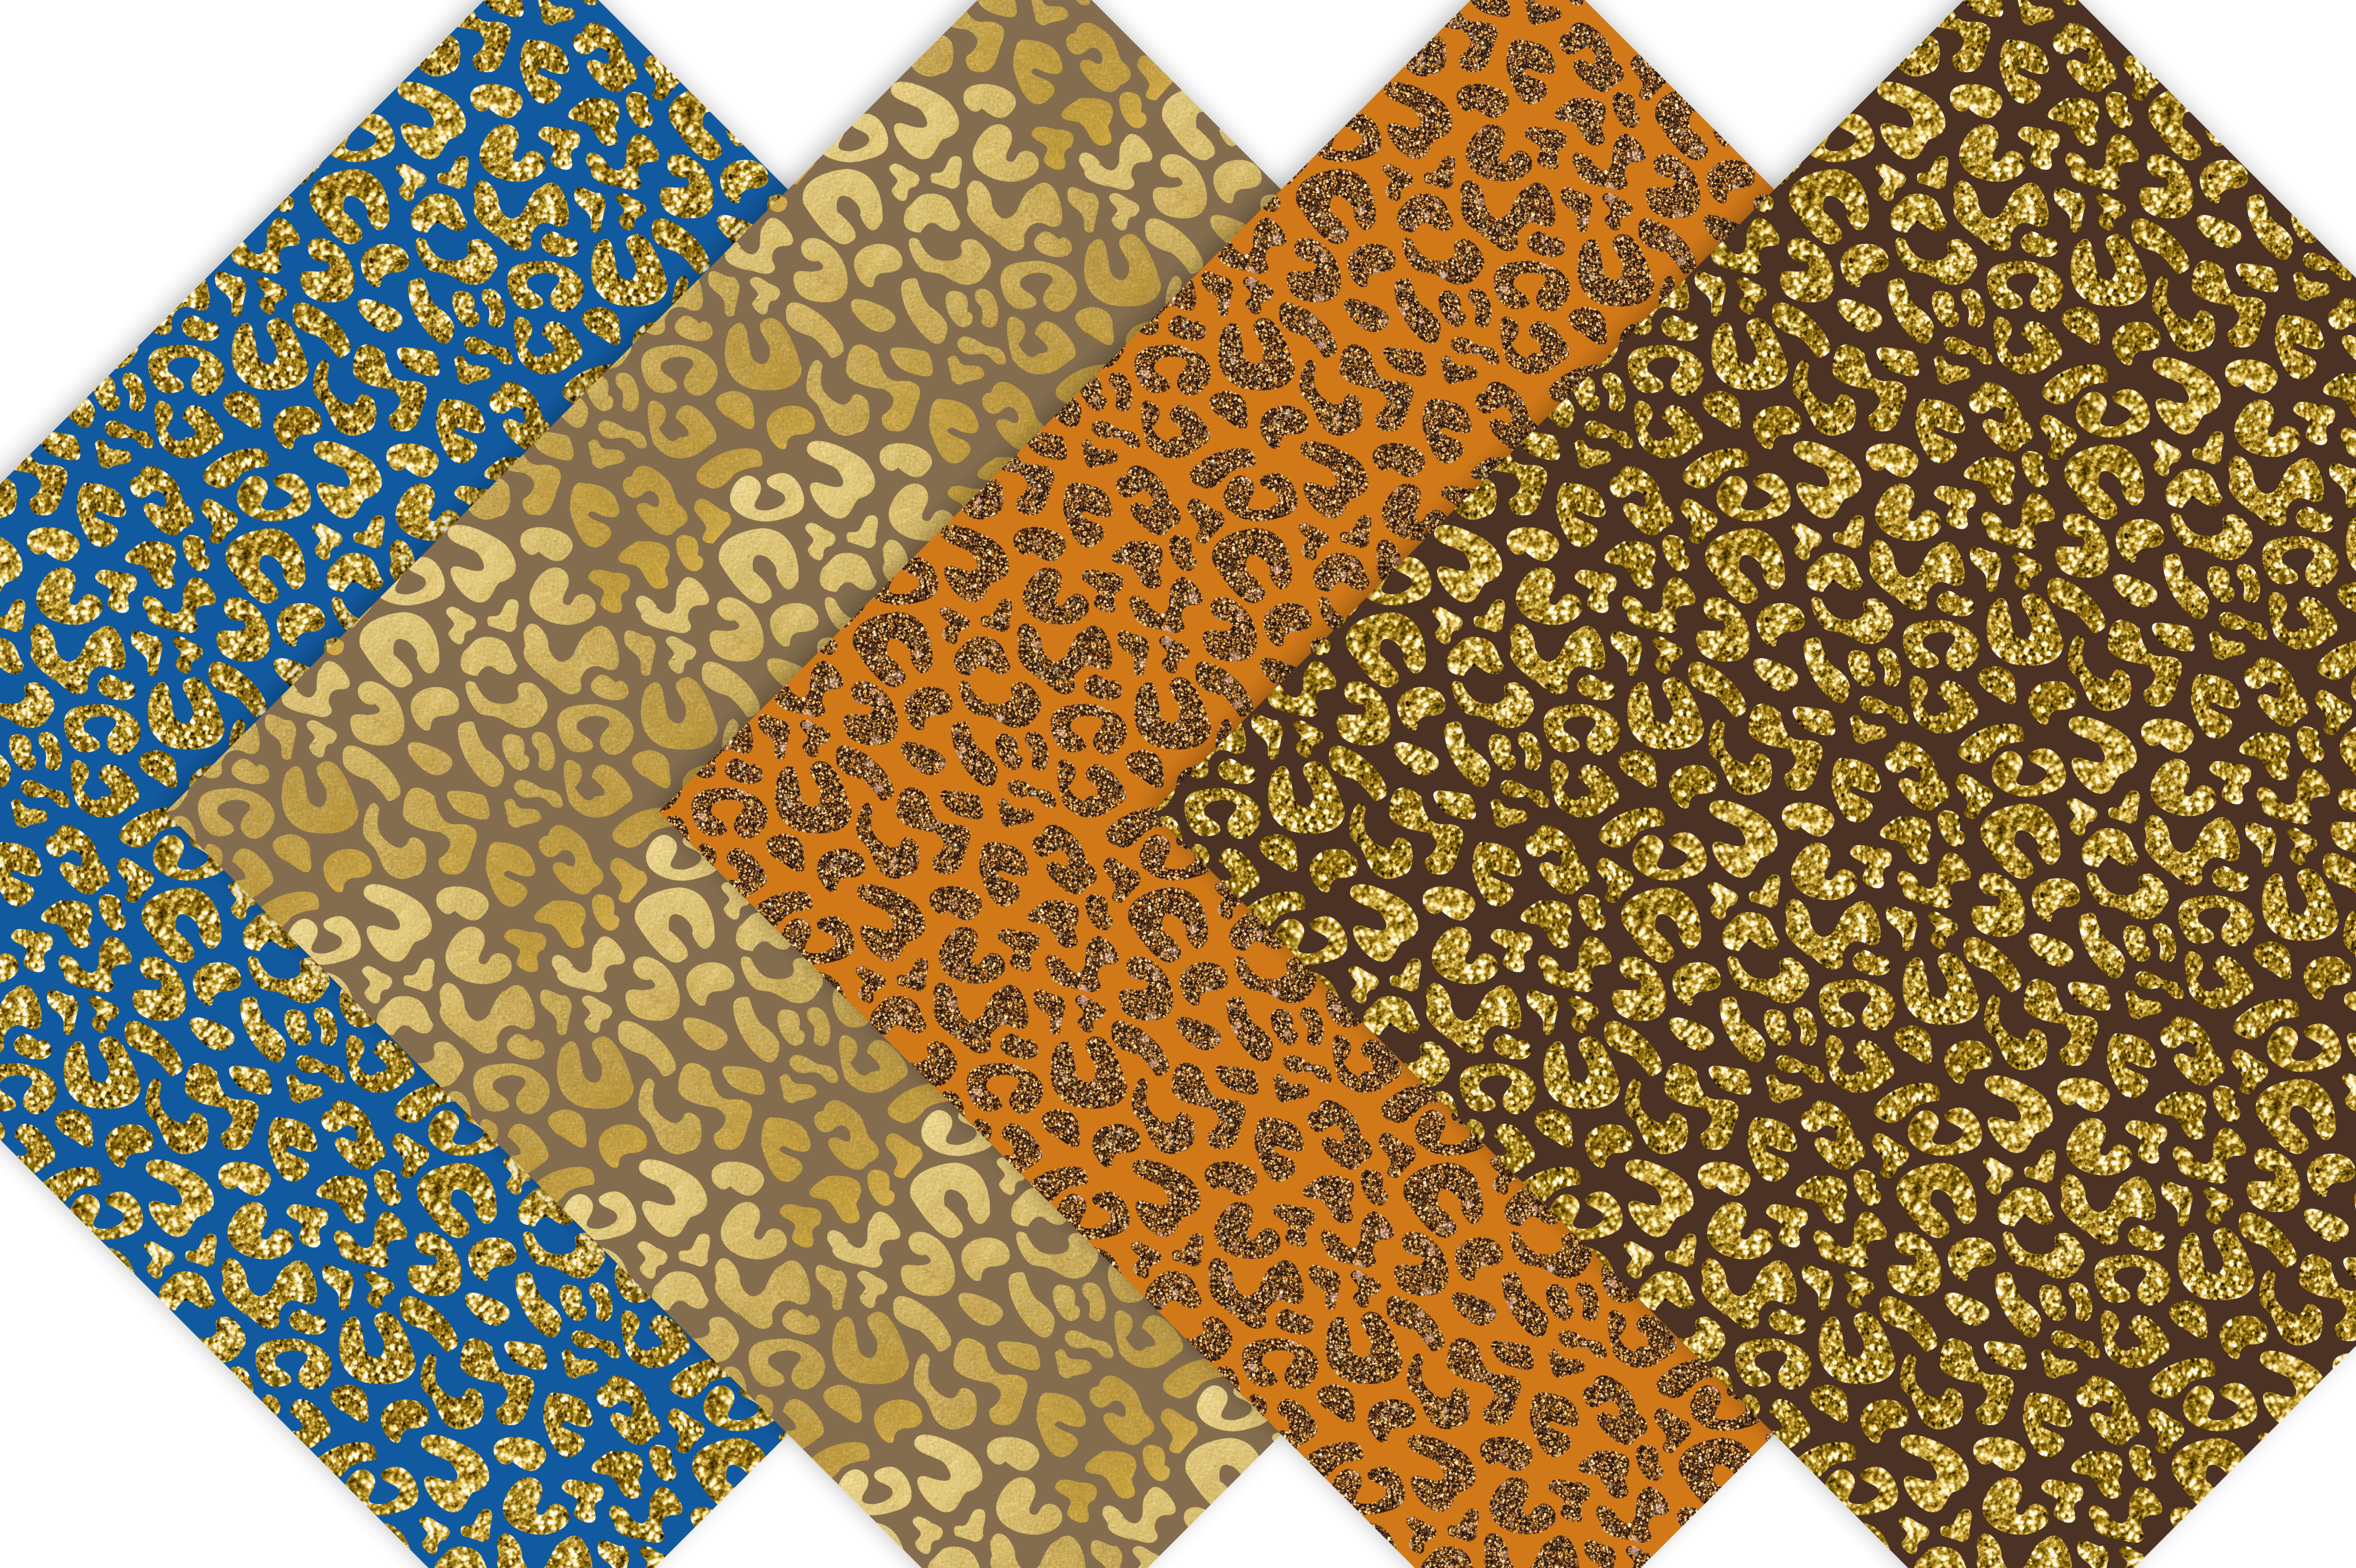 Gold & Glitter Cheetah Paper Pack example image 3